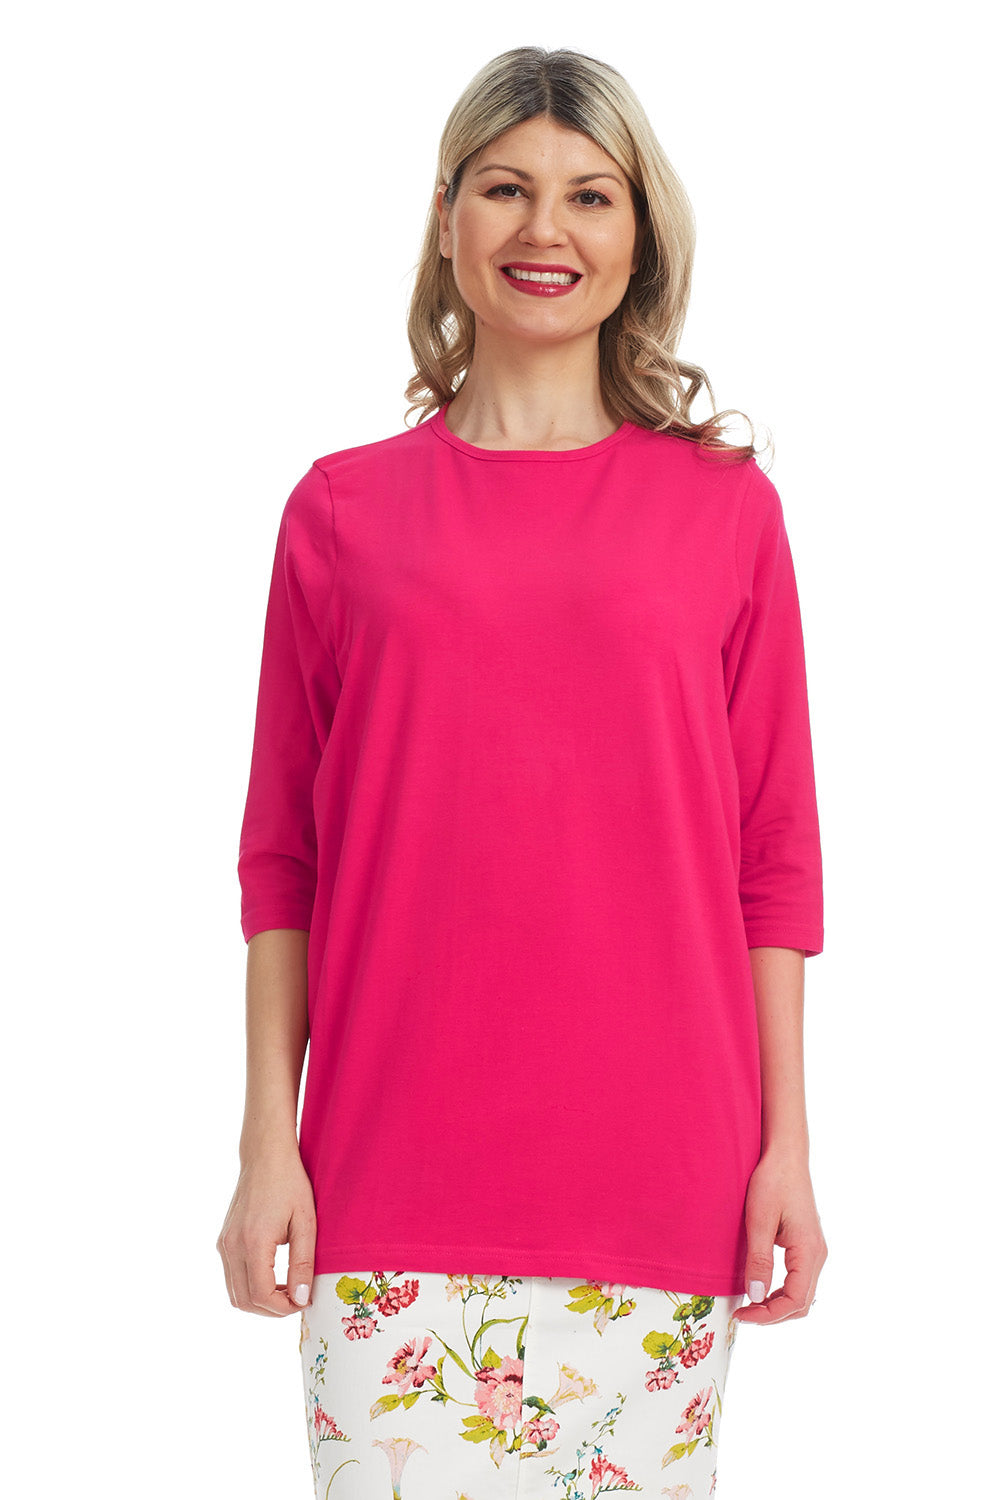 Esteez Loose Tee - Women's 3/4 Sleeve - Loose Fitting T-Shirt - FUCHSIA